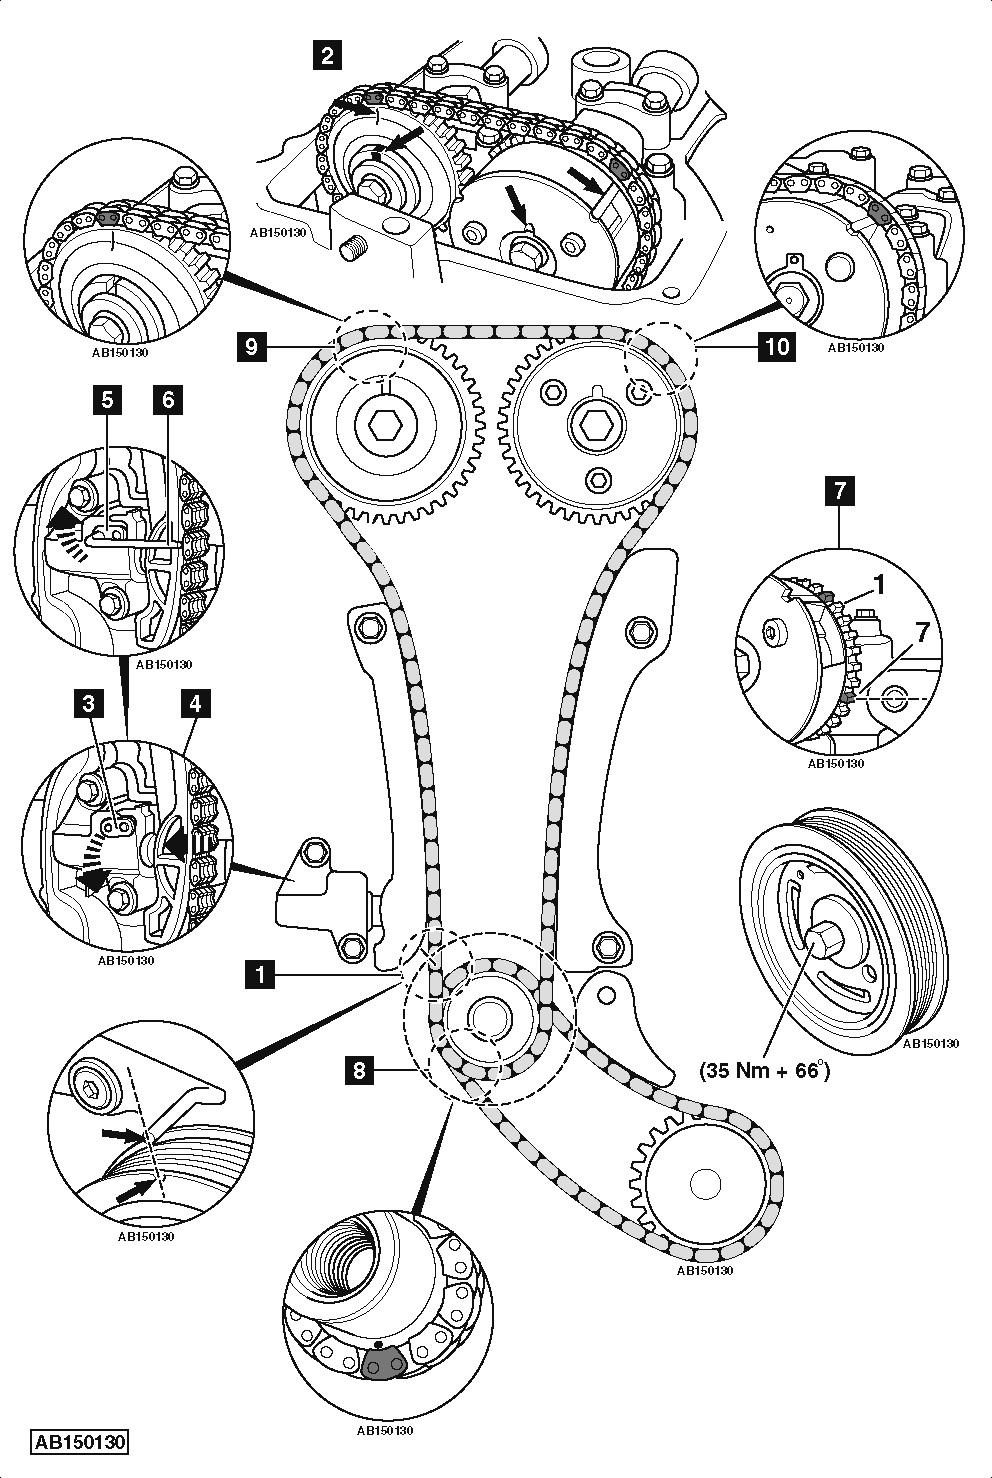 [DIAGRAM] Renault Megane 2005 User Wiring Diagram FULL